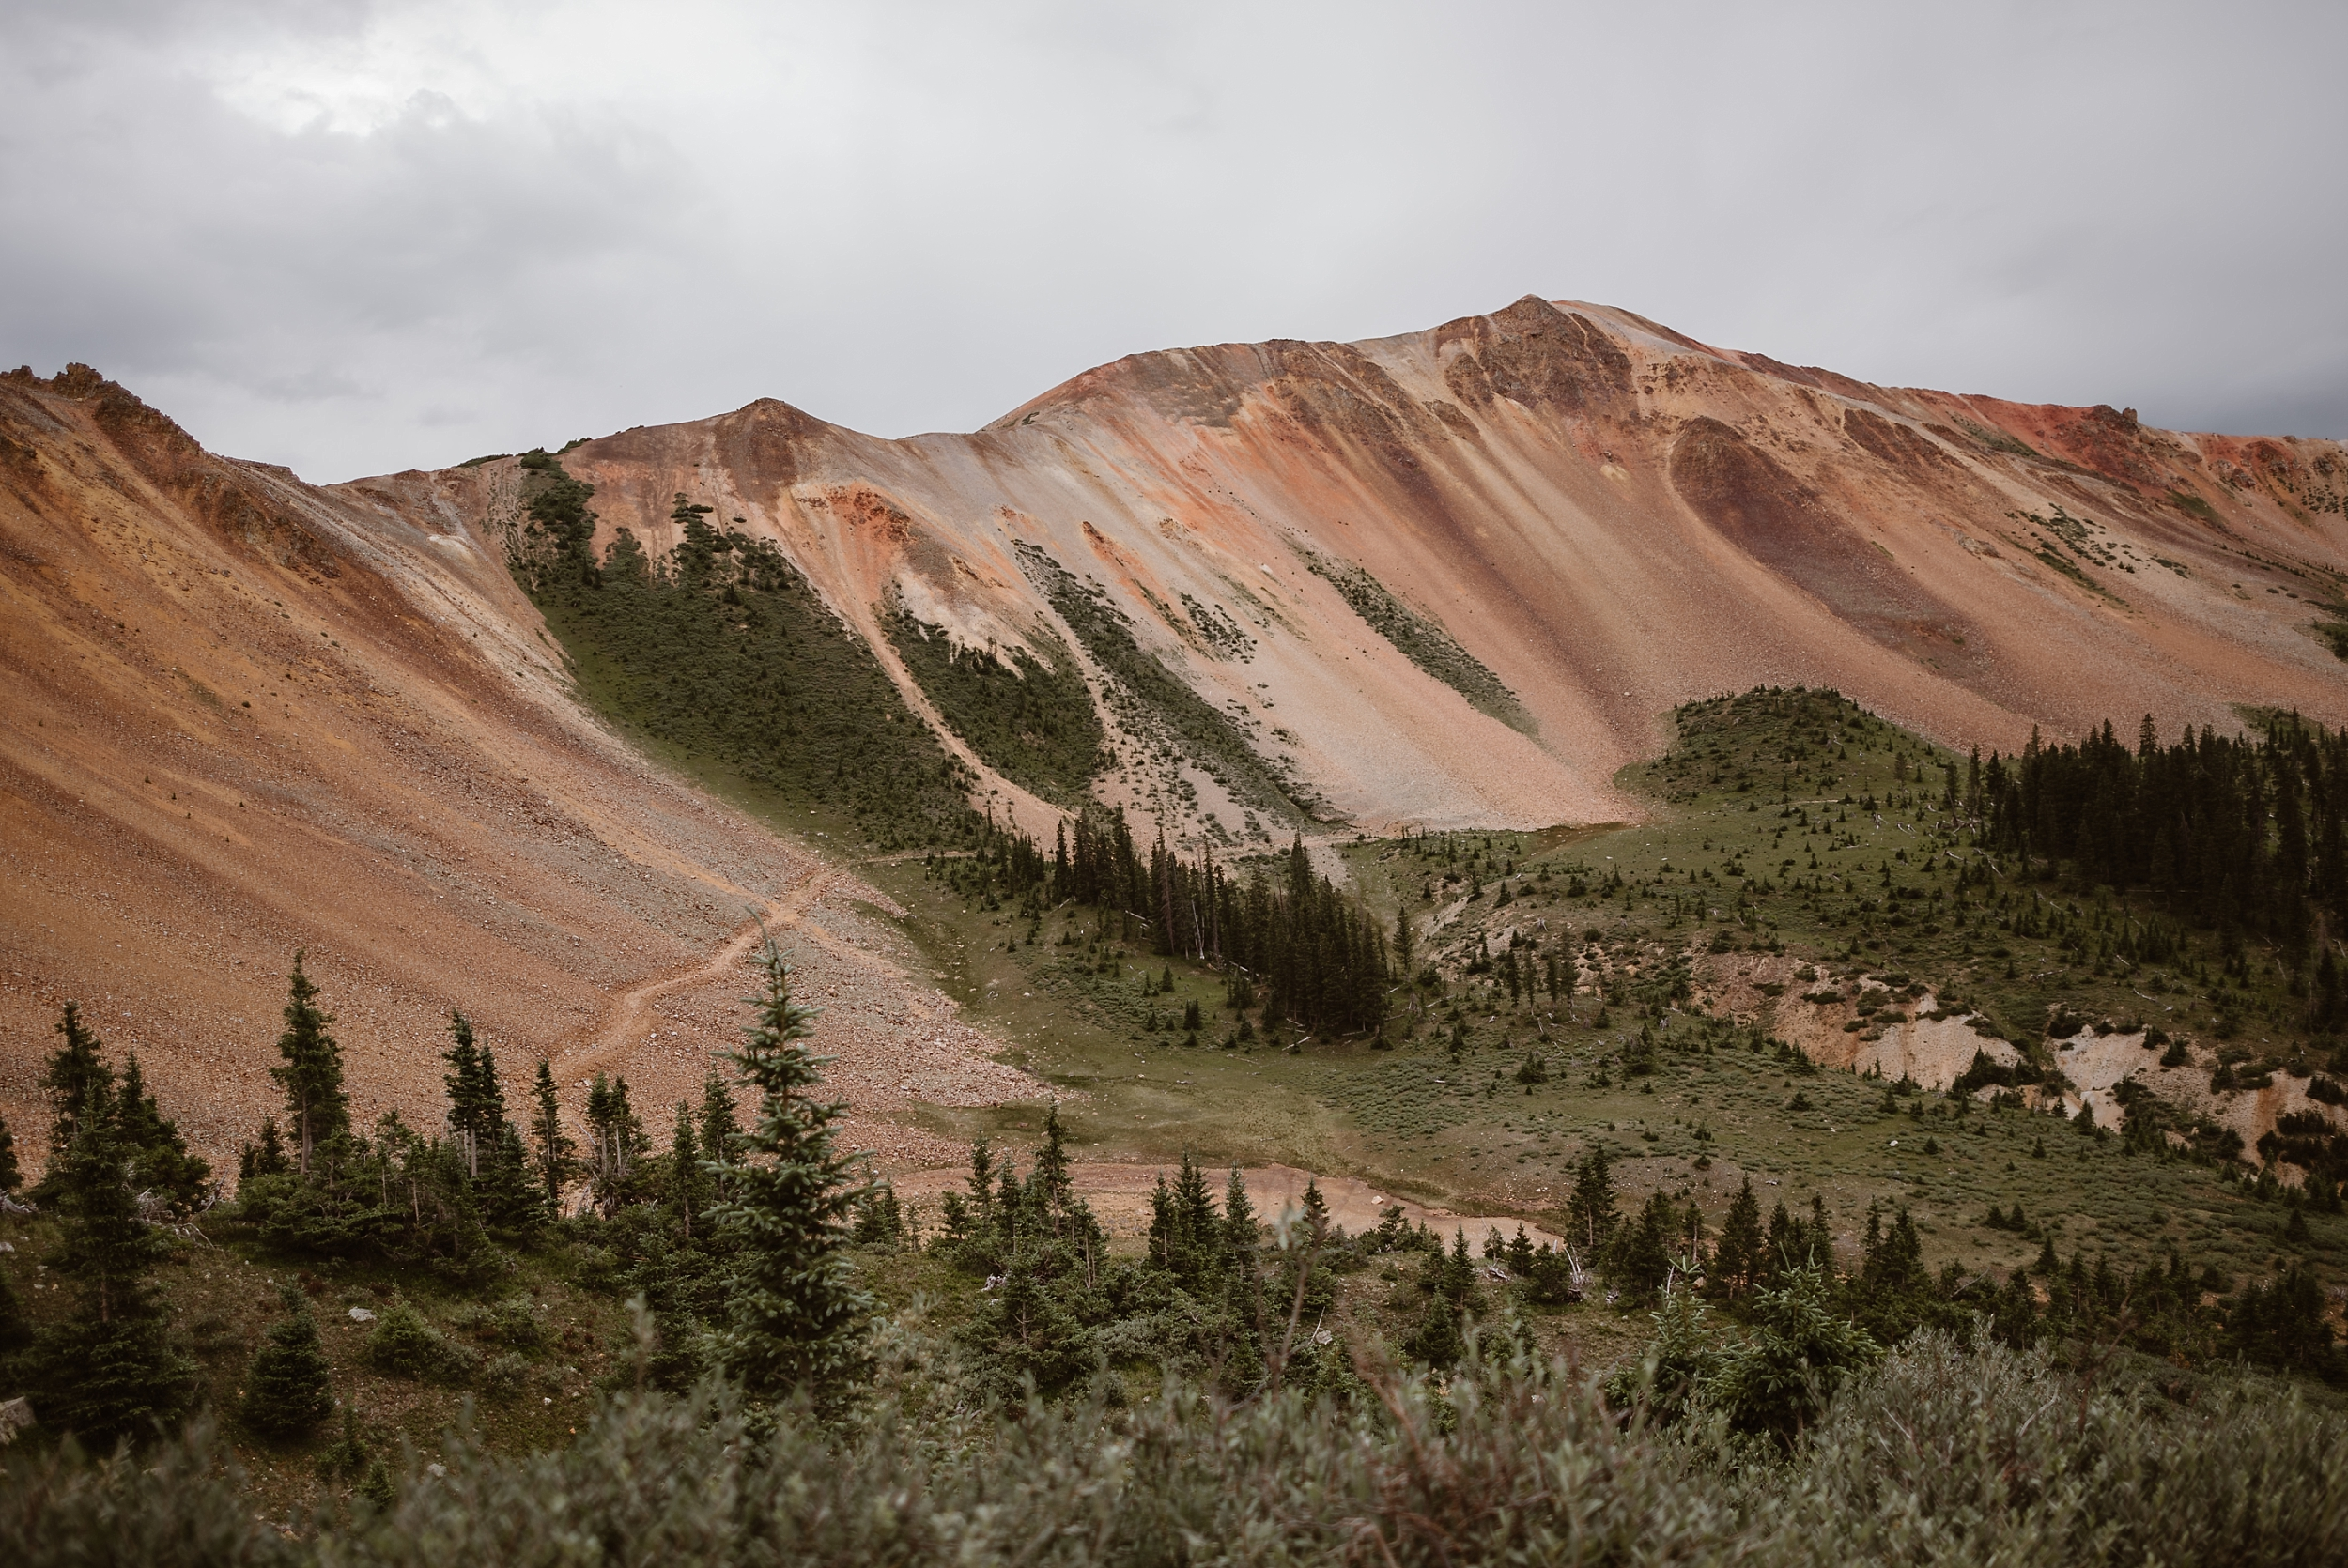 In this adventure photography shot, the reddish mountains of Ouray, Colorado juxtapose against the lush, green meadows at the base of them. Along the bottom of the mountain, an off-road 4x4 path is seen.